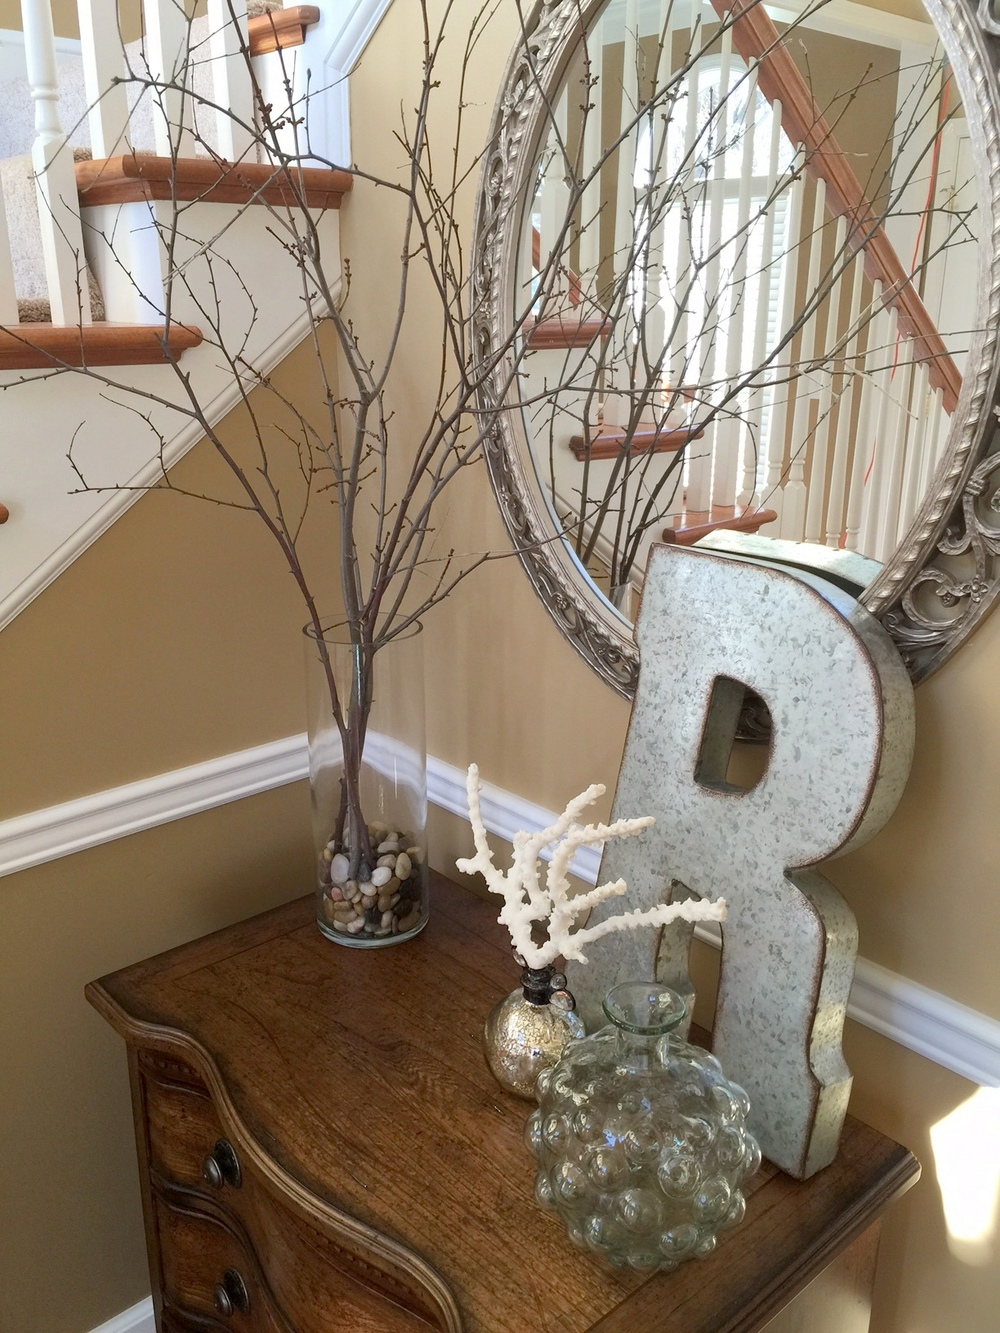 Decorate your home using tree branches from your backyard.